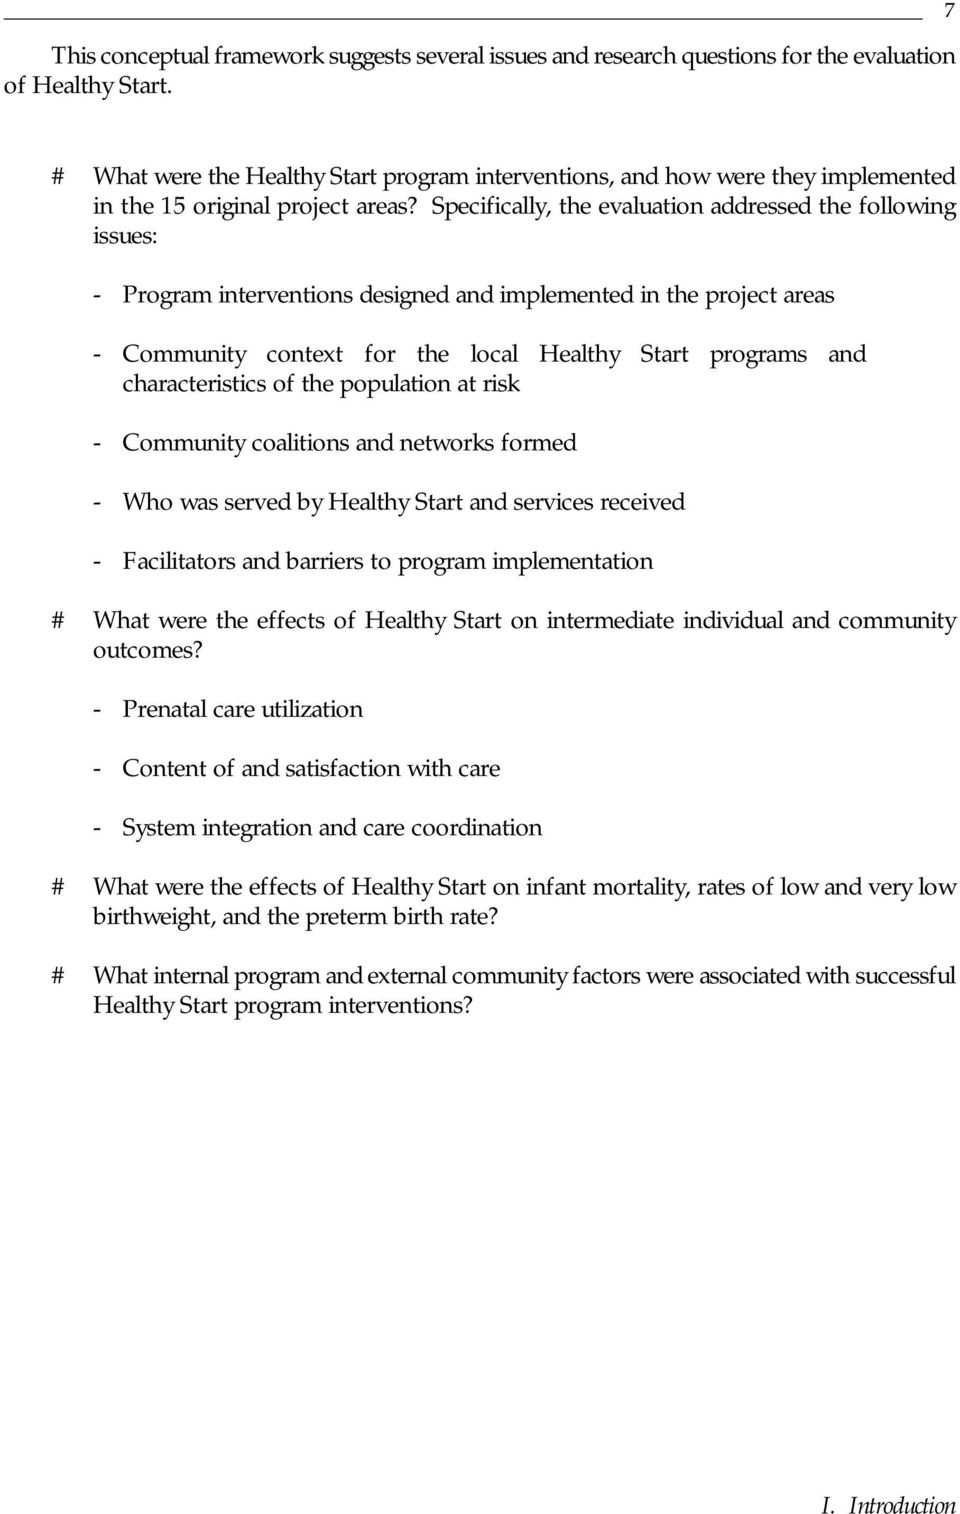 Specifically, the evaluation addressed the following issues: - Program interventions designed and implemented in the project areas - Community context for the local Healthy Start programs and